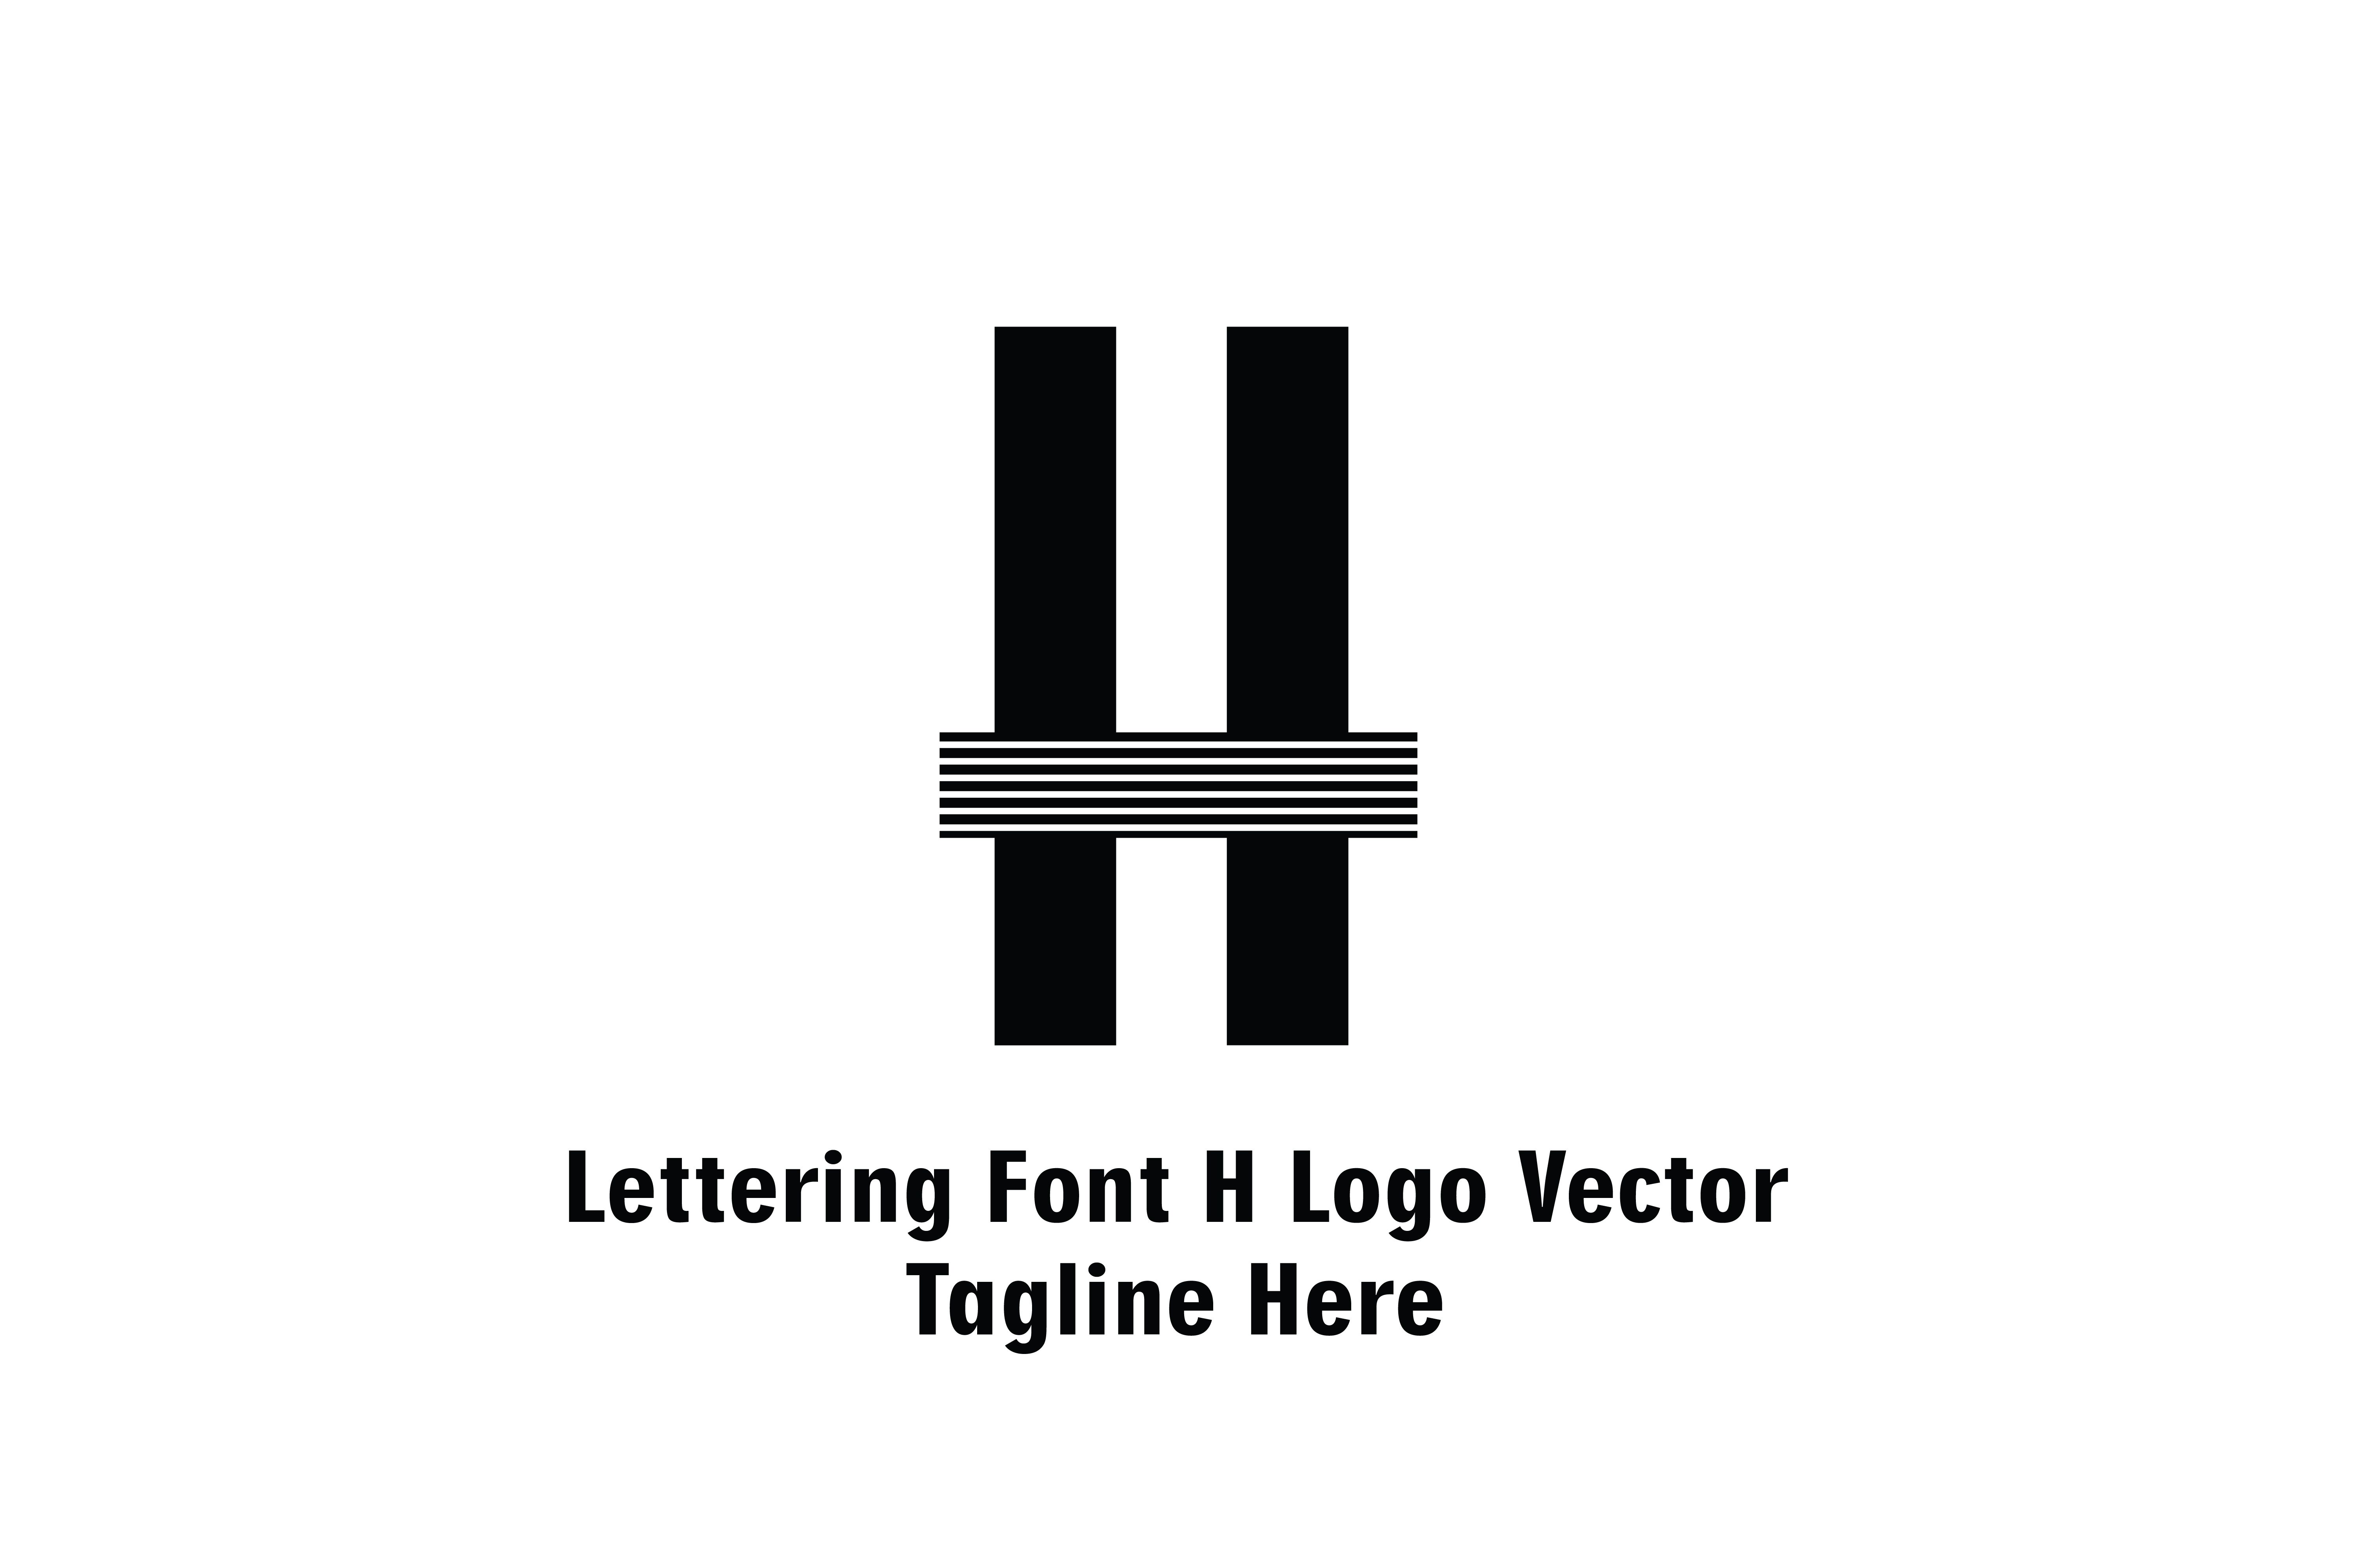 Lettering Font H Logo Vector (Graphic) by Yuhana Purwanti